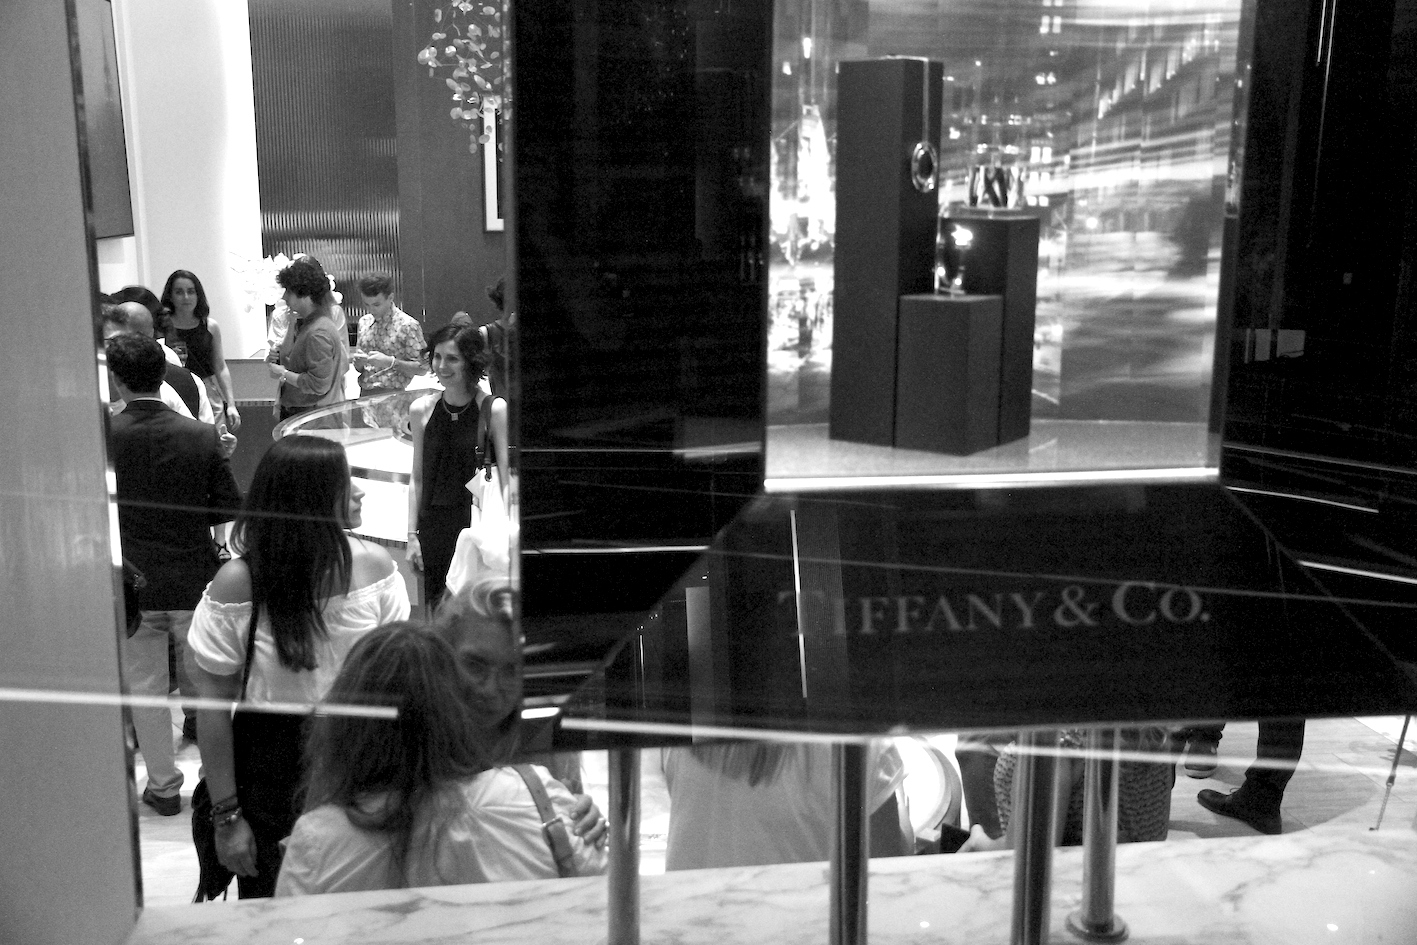 Tiffany & Co. Barcelona